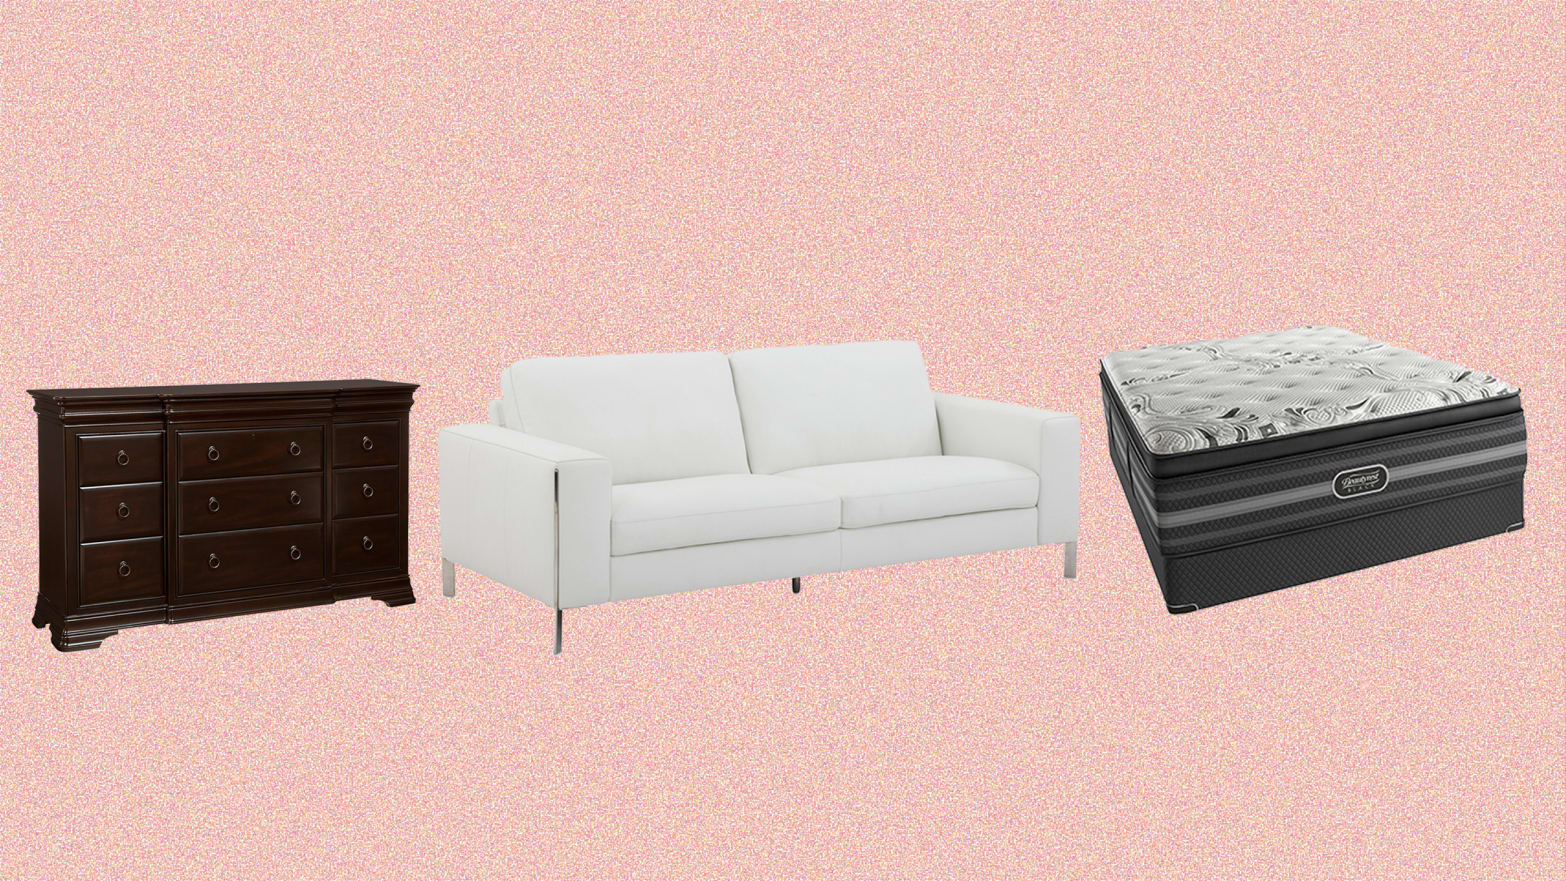 Good Quality Sofa Bed Sale Macy S Furniture For The Entire Home Is 40 To 70 Off During